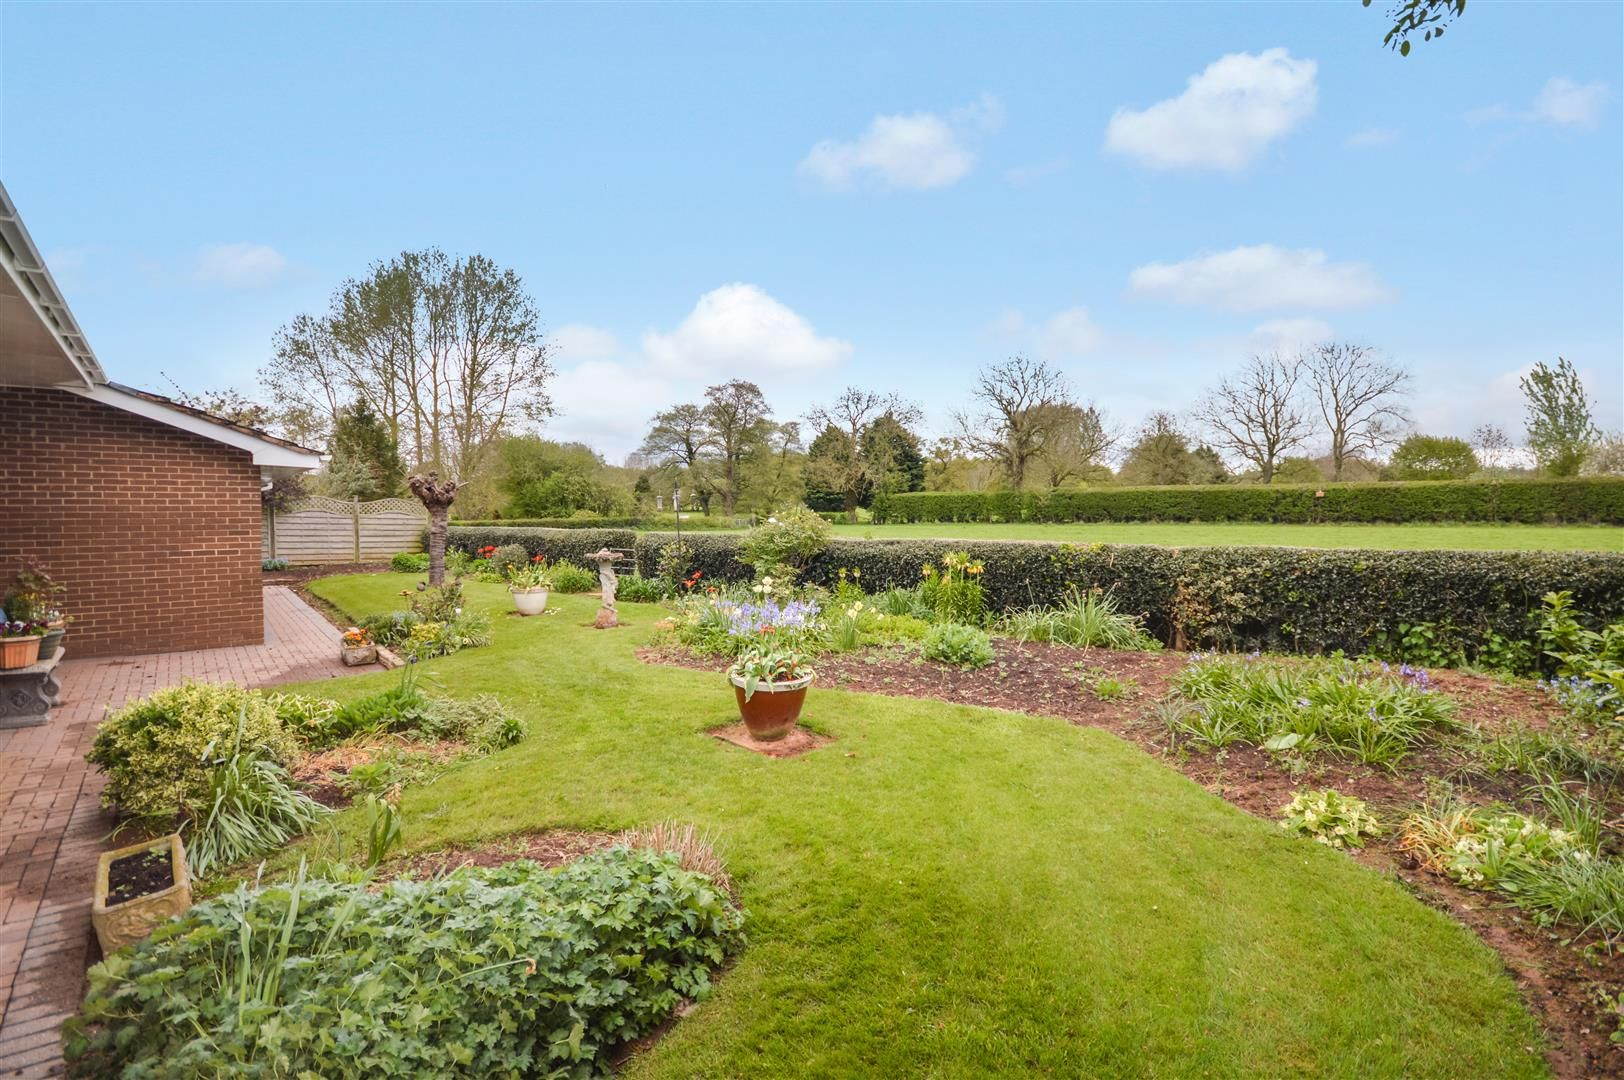 3 bed detached-bungalow for sale in Bodenham  - Property Image 5